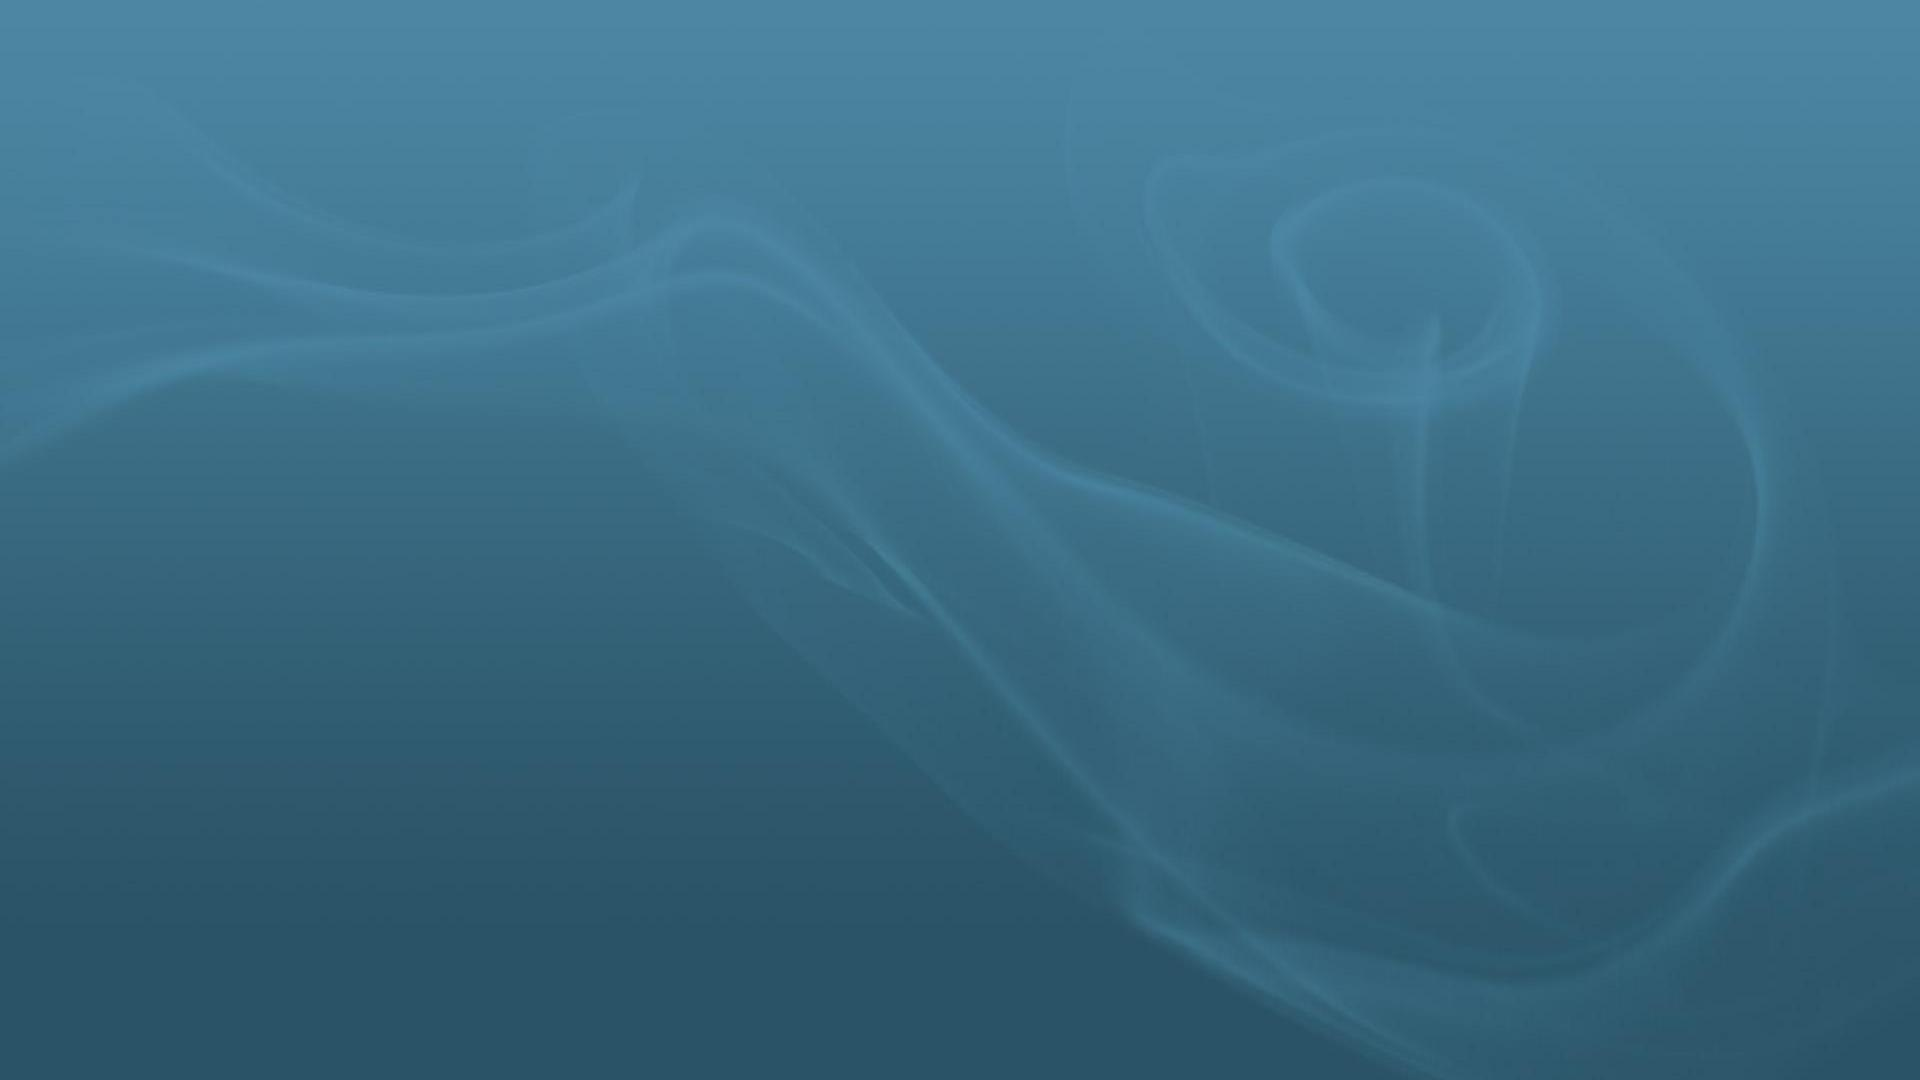 blue smoke background wallpaper wallpapers 1920x1080 1920x1080